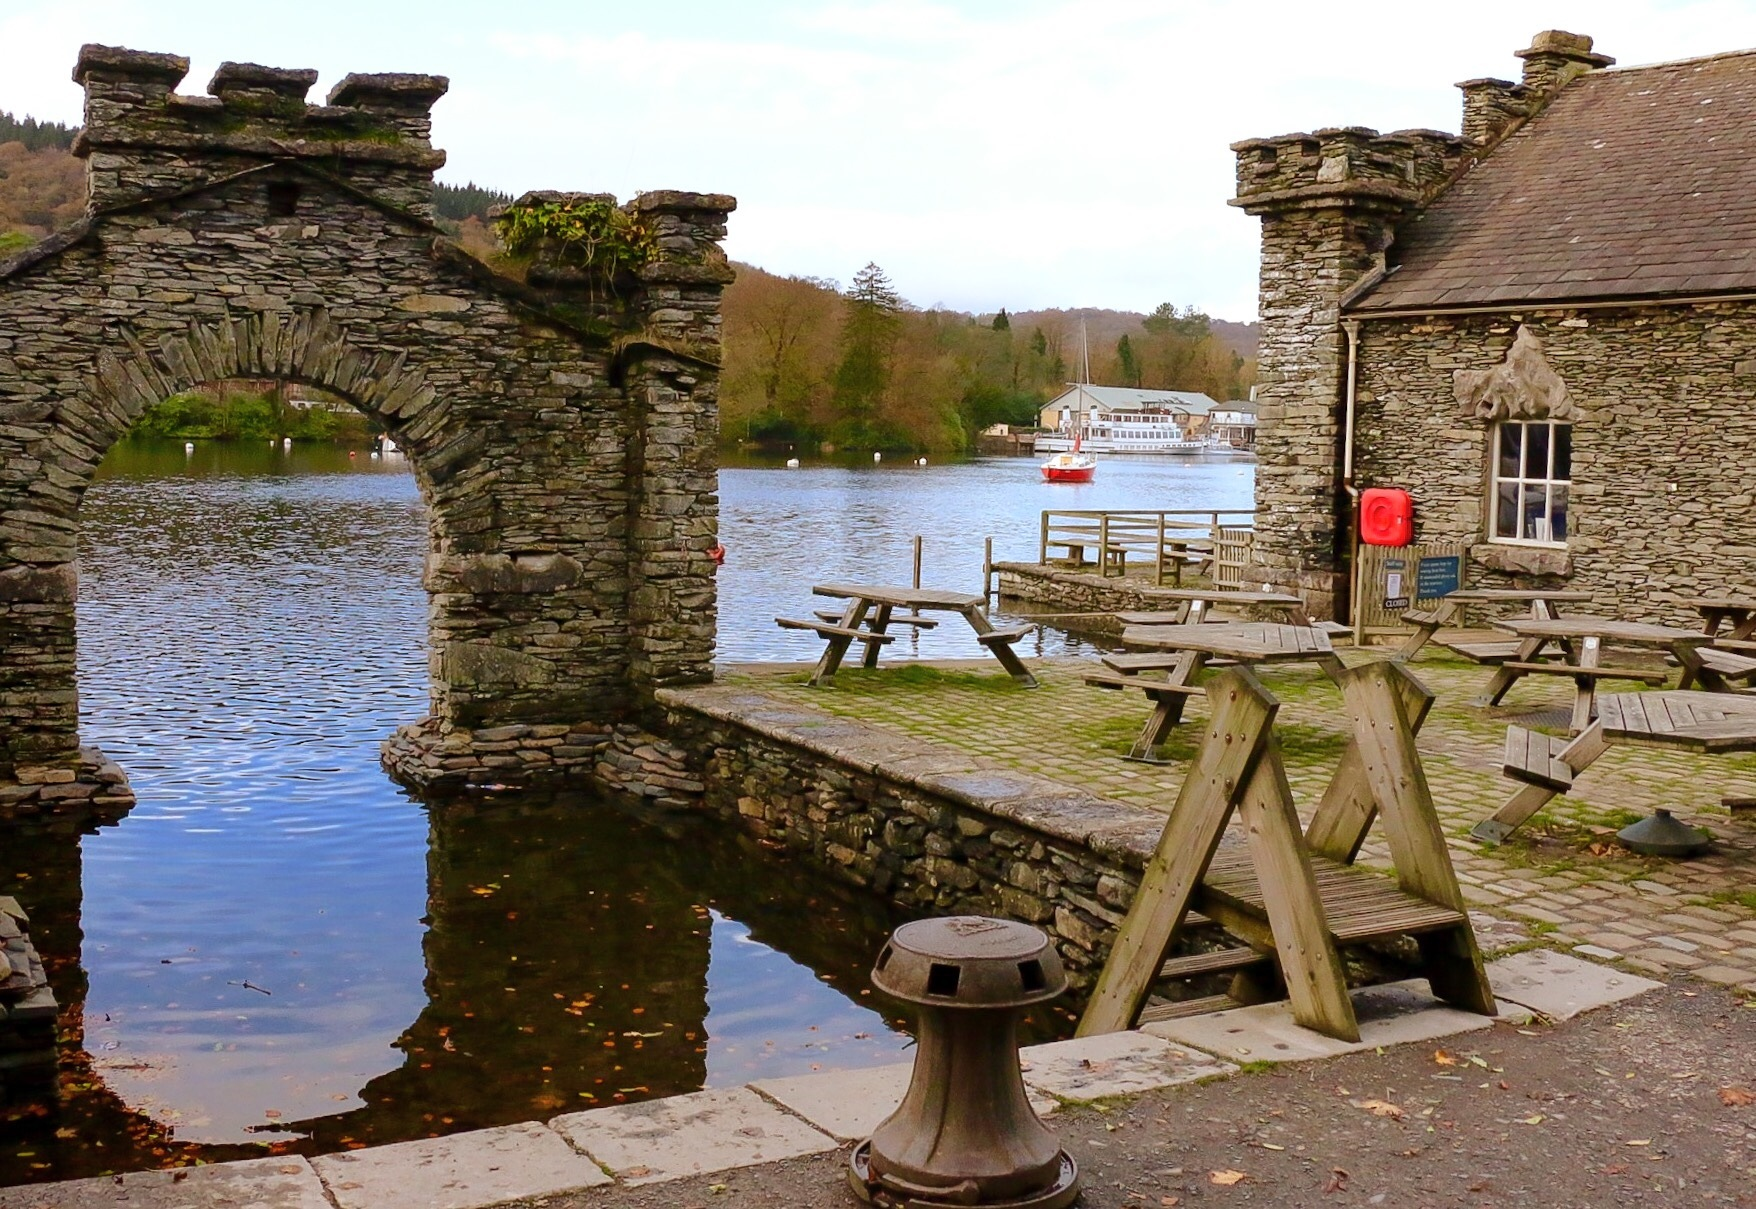 Fell Foot Windermere Cumbria uk... by Michael jjg